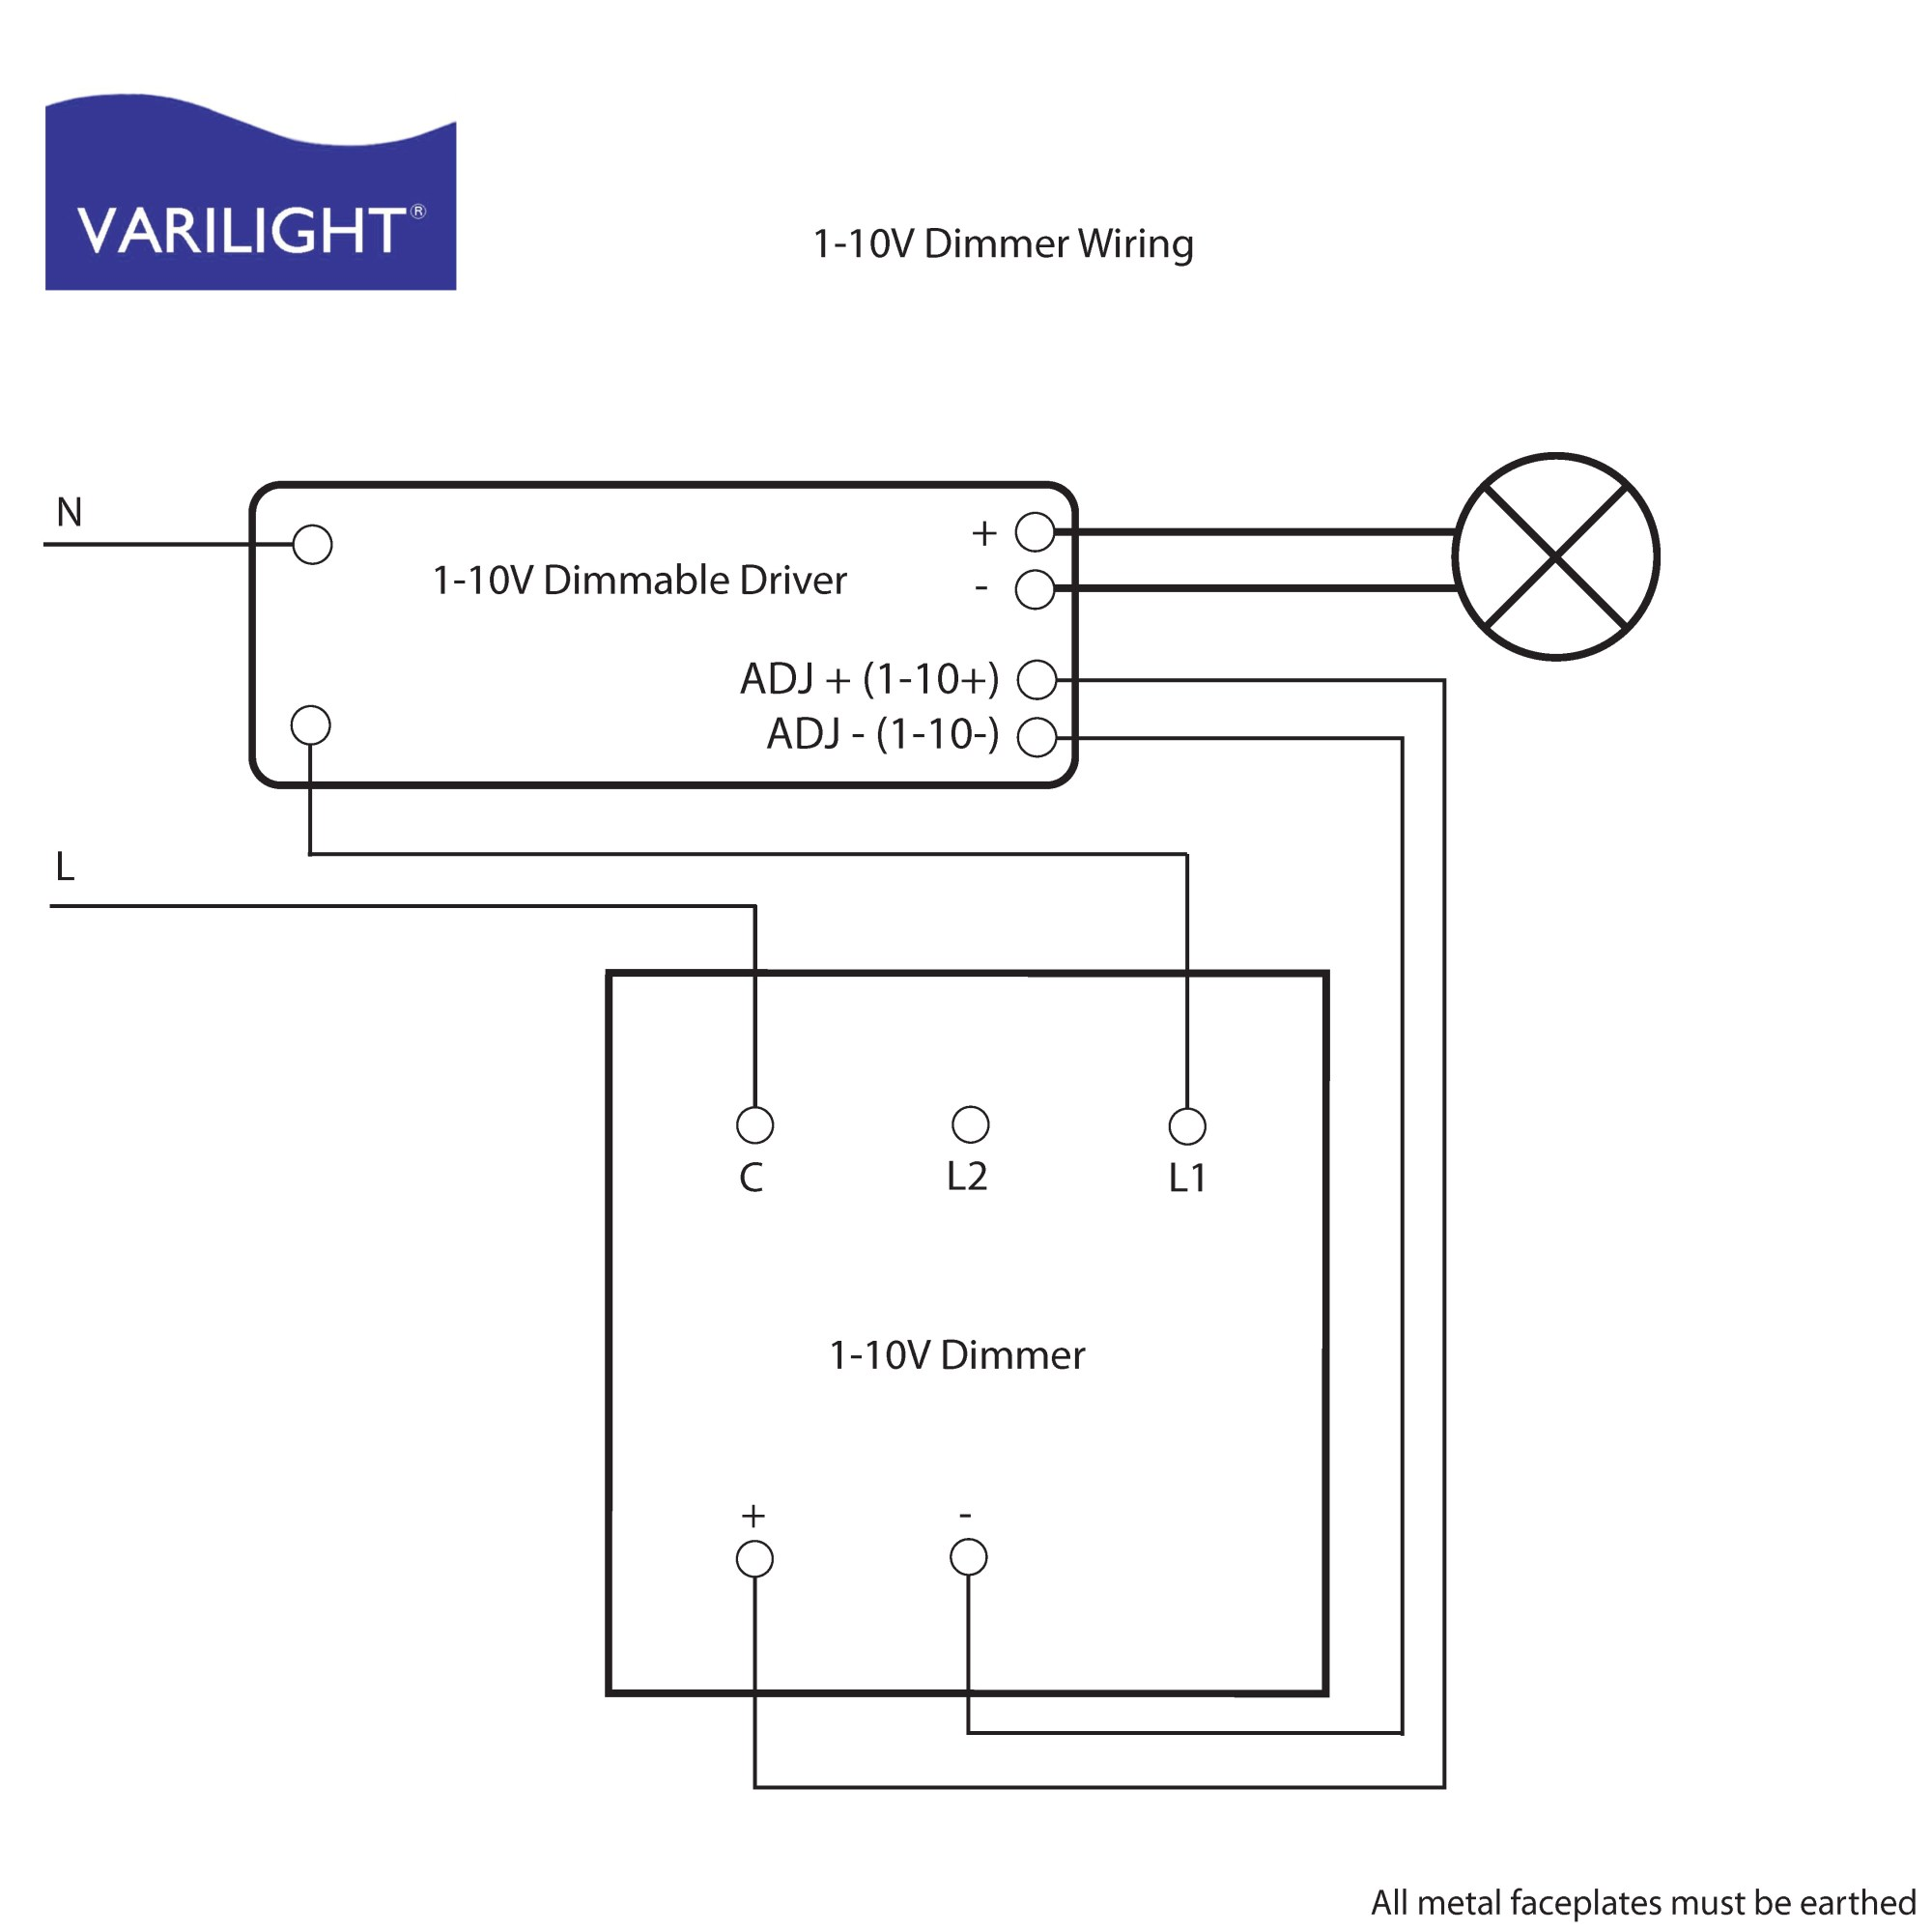 hight resolution of varilight wiring diagrams1 way 1 10v wiring